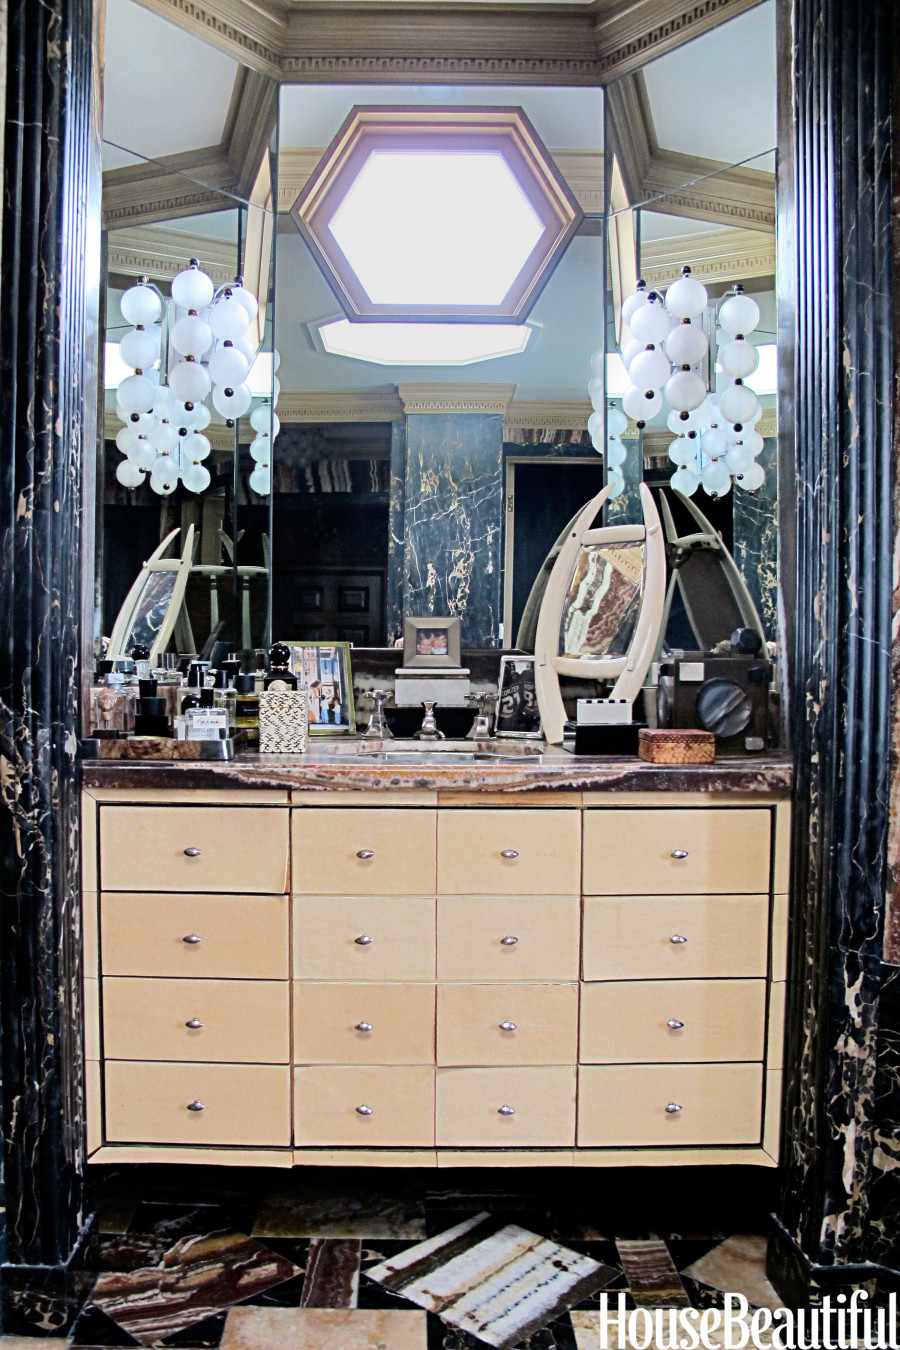 Kelly Wearstler S Bathroom Vanity Is Eccentric Funky And A Little Cluttered Photo Huffpost